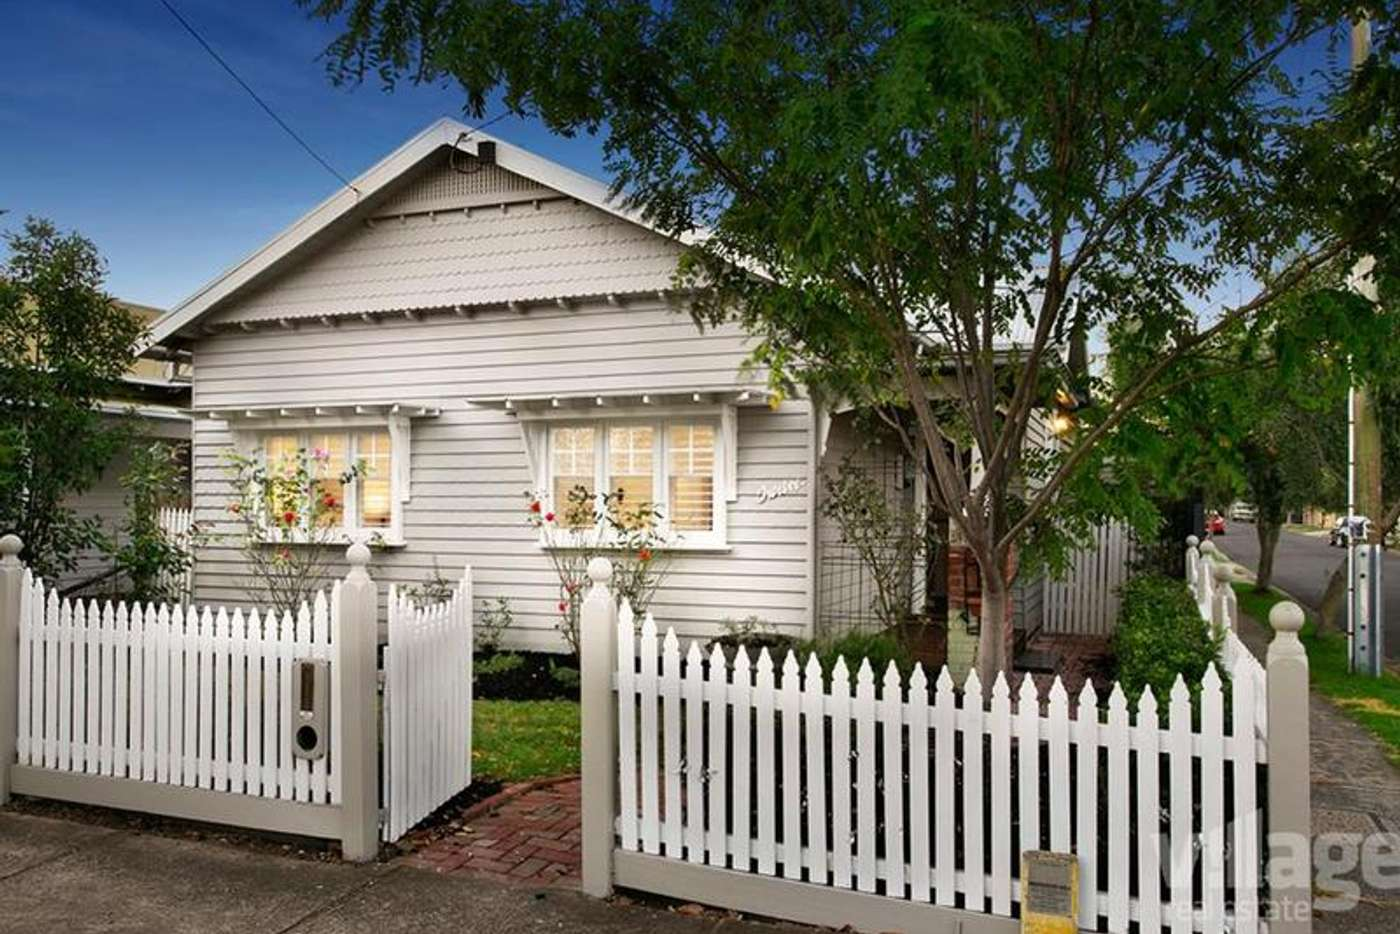 Main view of Homely house listing, 12 Stanhope Street, West Footscray VIC 3012